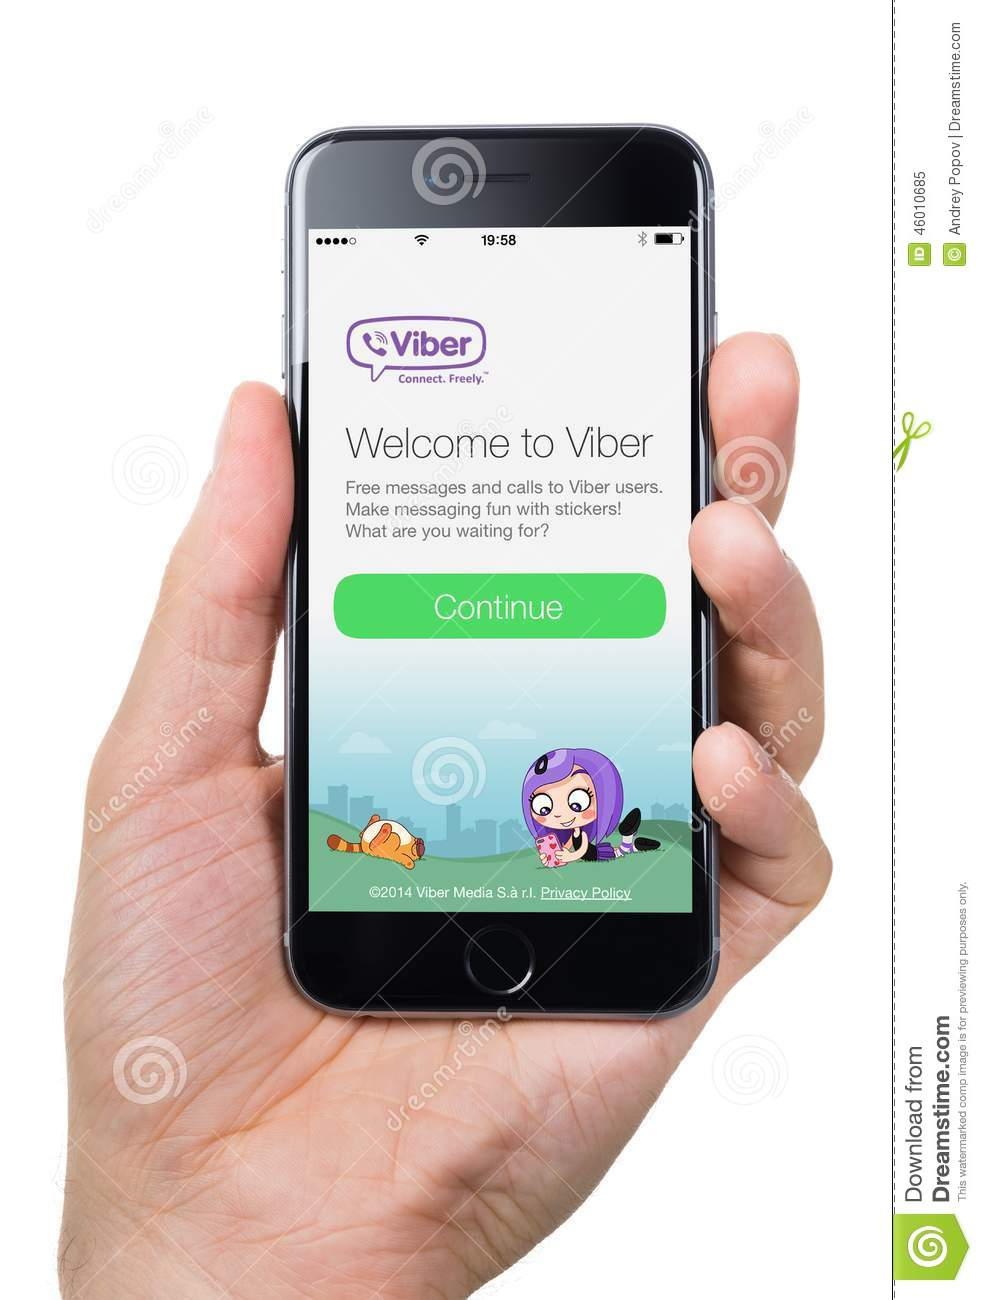 hand holding apple iphone 6 with viber welcome page on. Black Bedroom Furniture Sets. Home Design Ideas